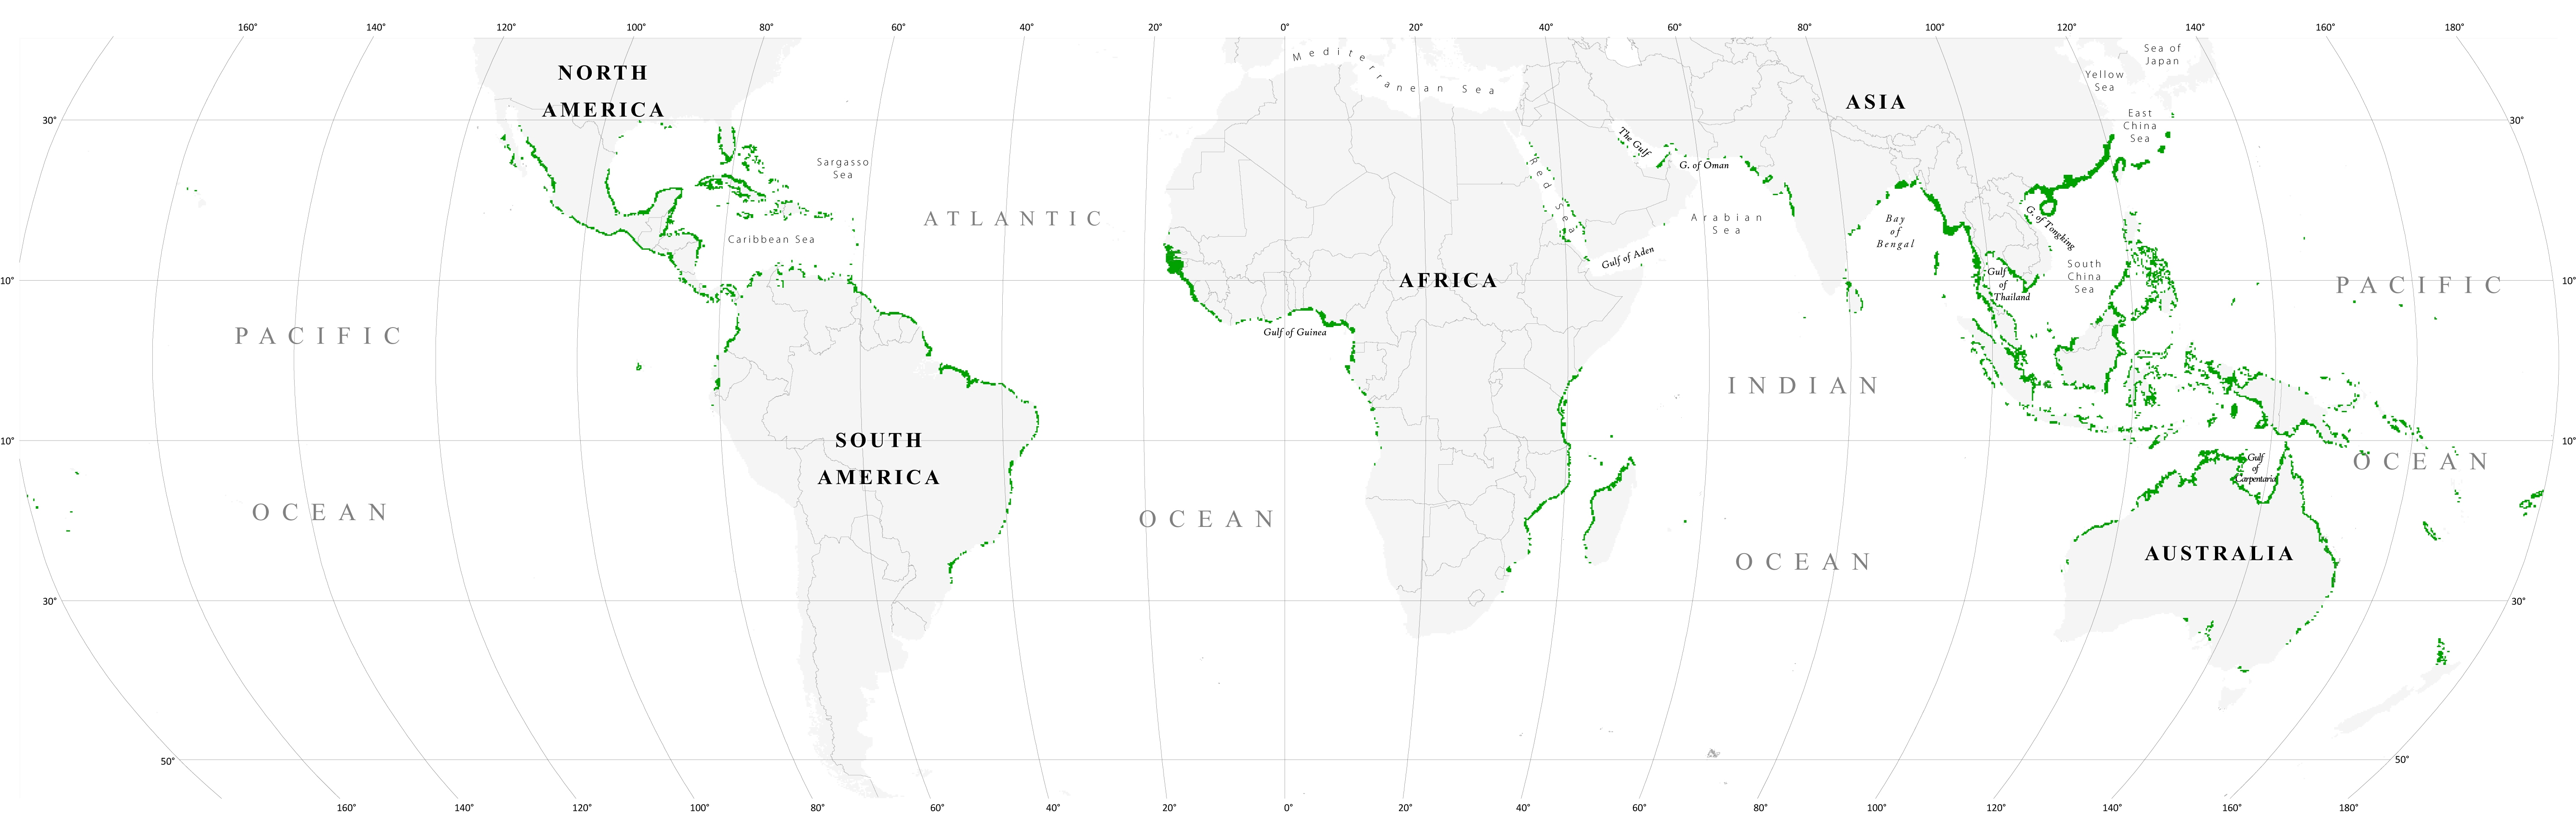 Archivoworld map mangrove distributiong wikipedia la archivoworld map mangrove distributiong gumiabroncs Images